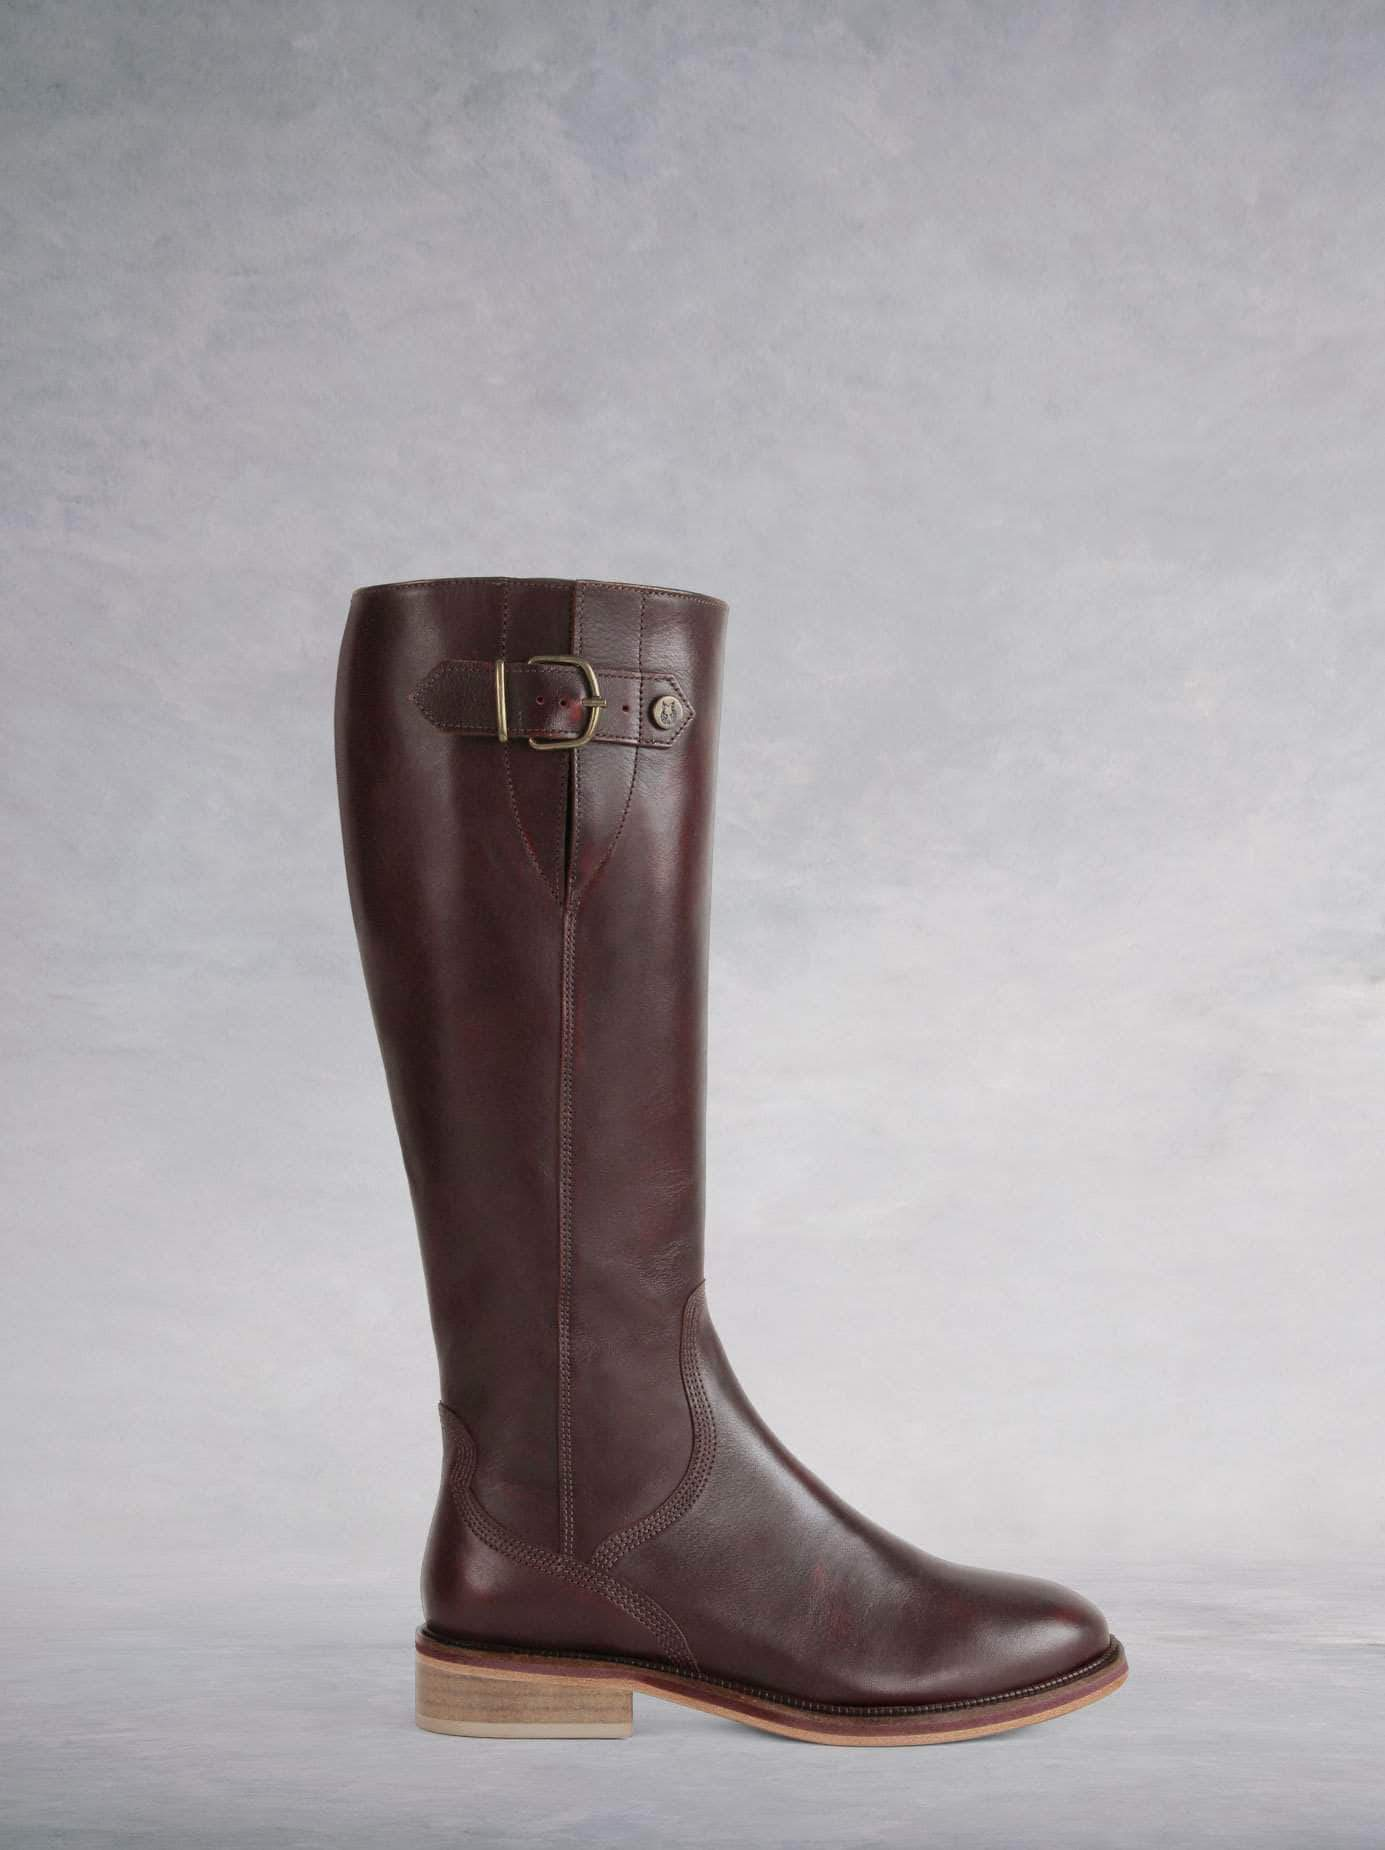 Joiners Conker Brown Leather - Everyday classic leather boot.